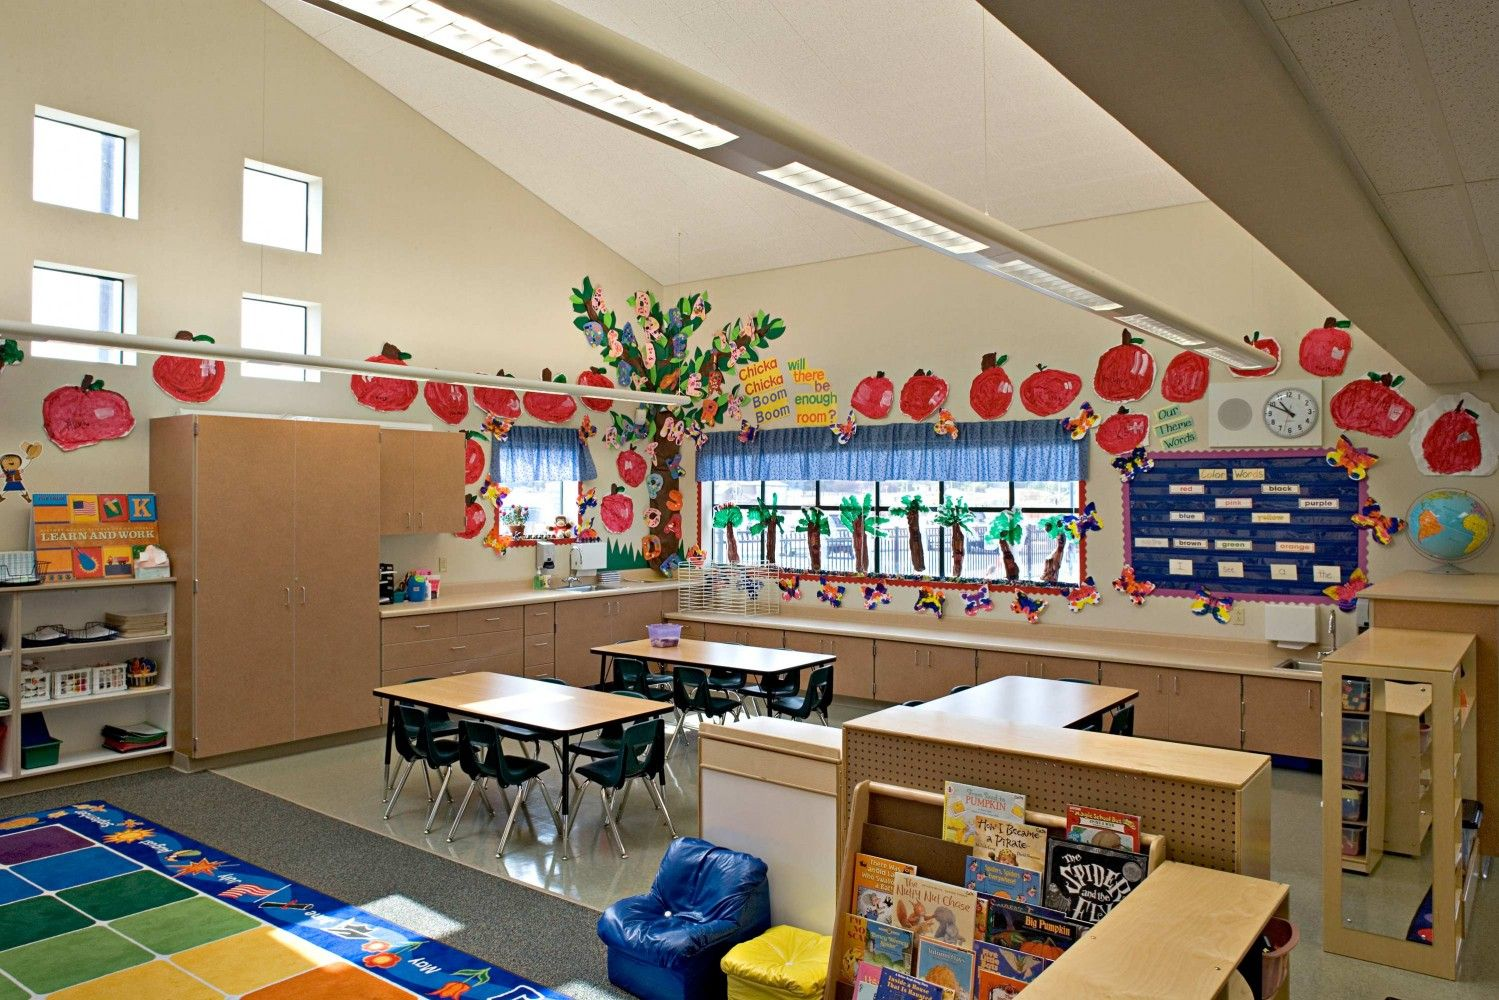 Classroom Design Project : Elementary classroom design barrett ranch